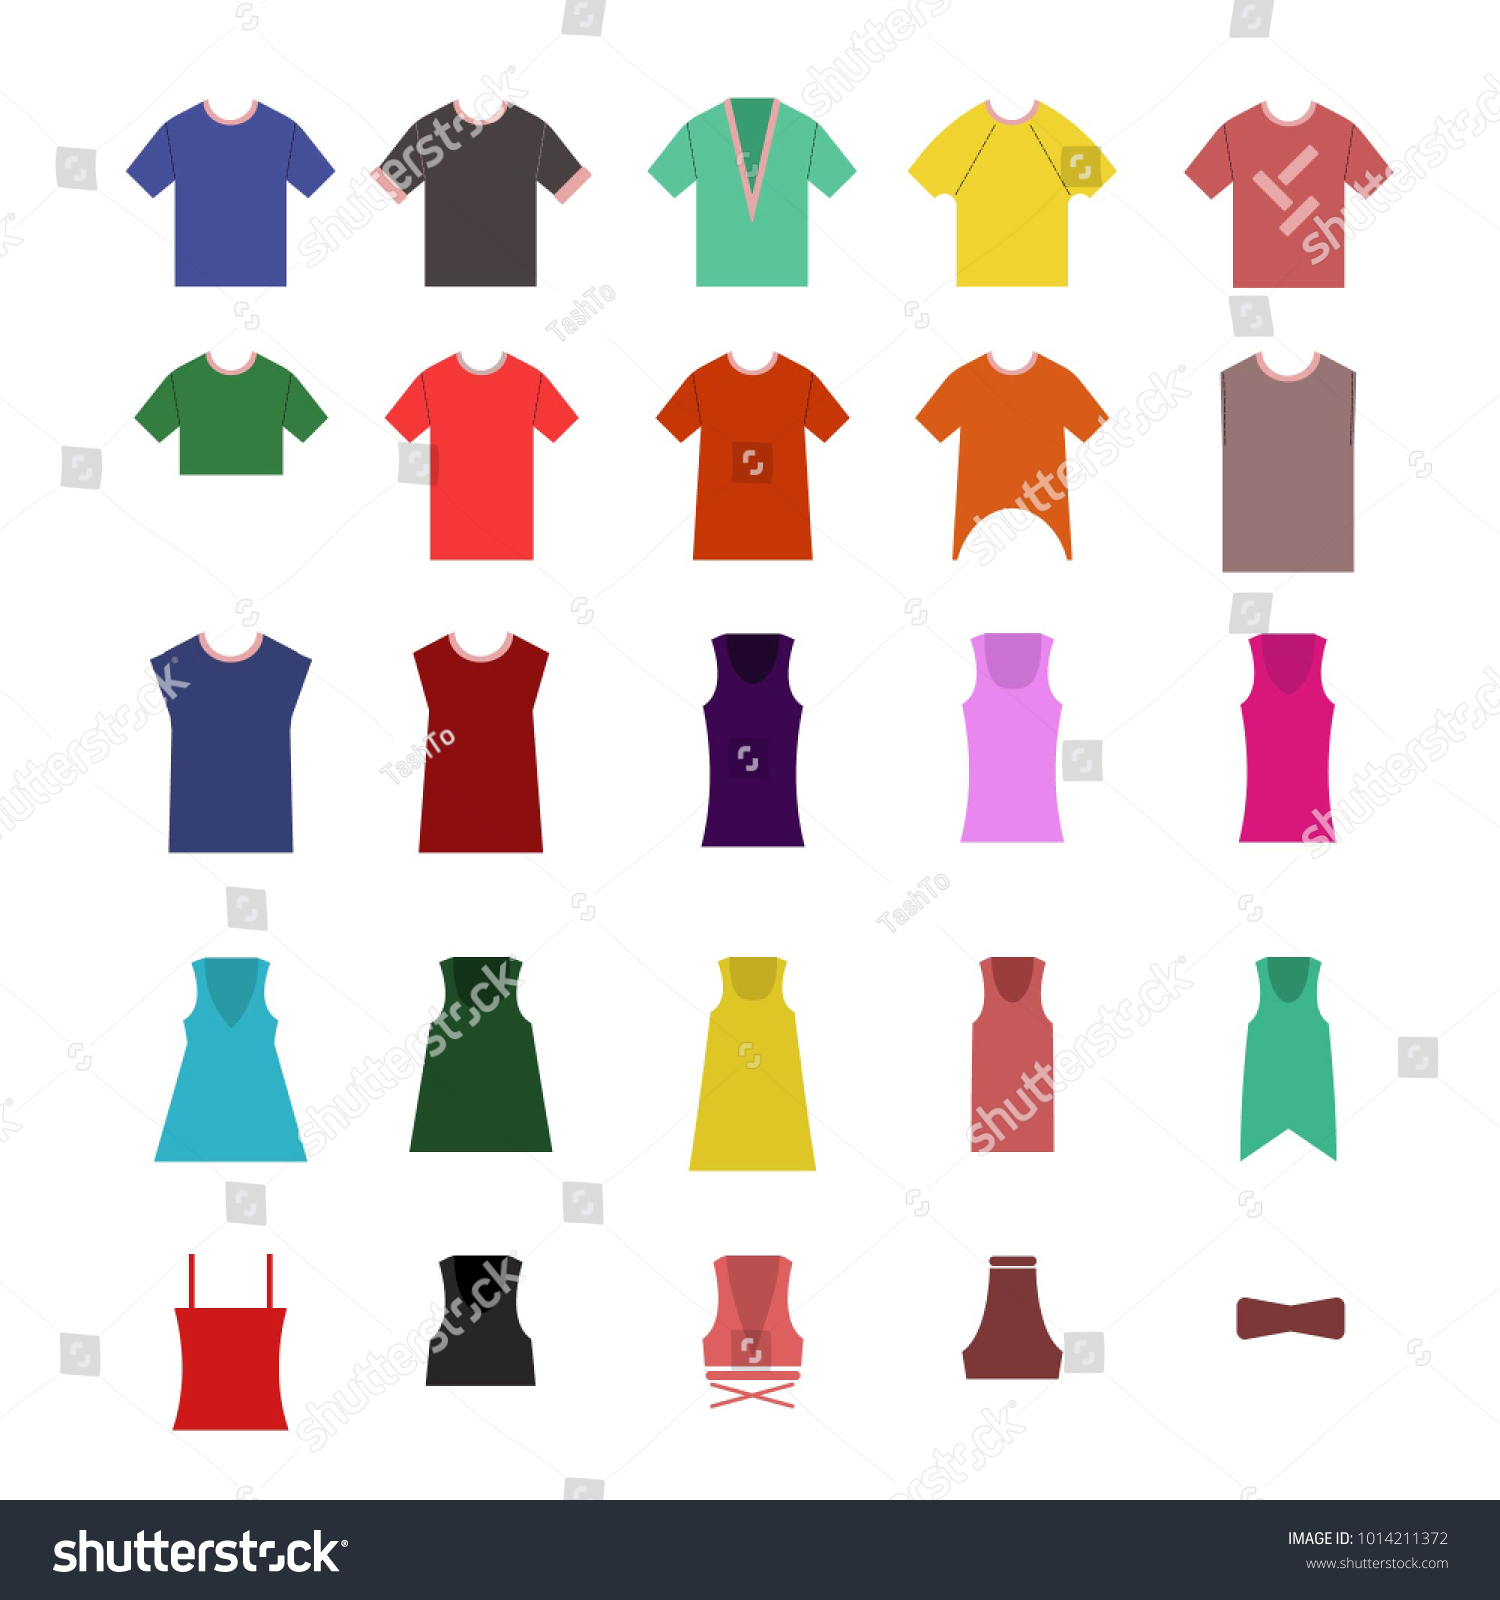 Vector Image Tshirts Clothing Stores Different Stock Vector Royalty